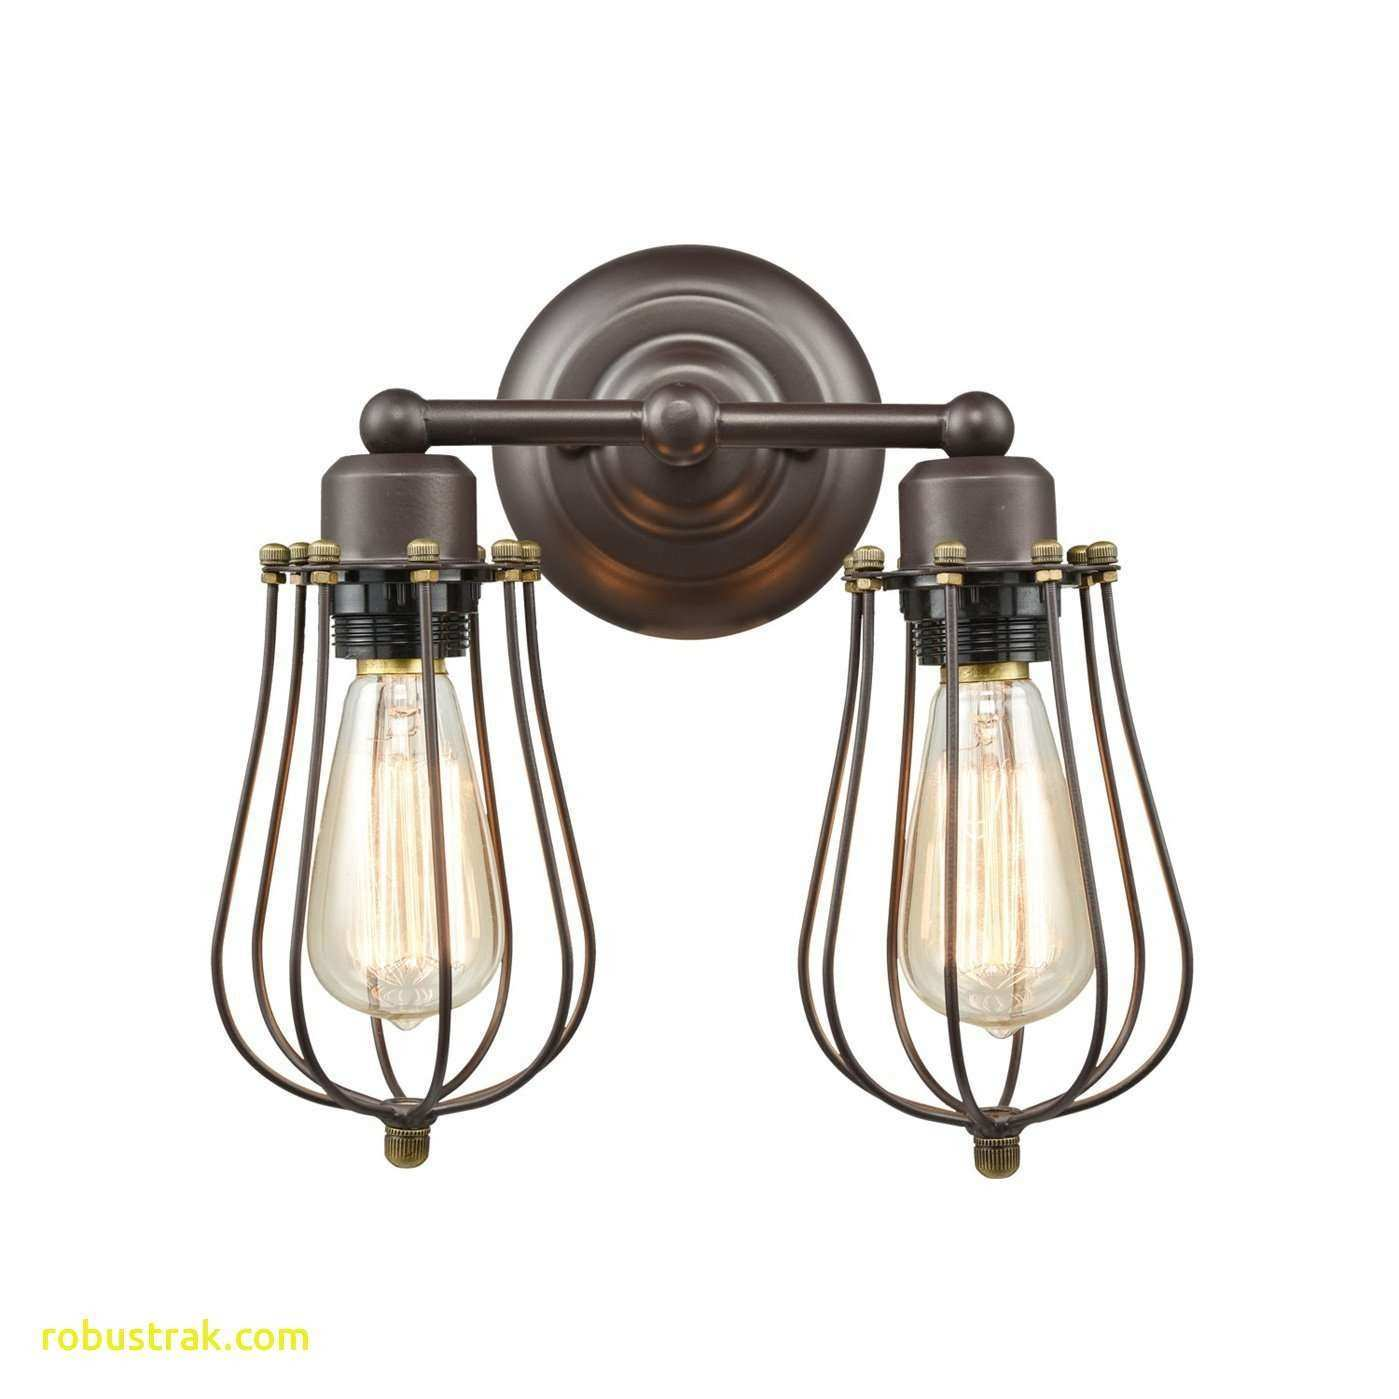 Lovely Oil Rubbed Bronze Wall Sconce